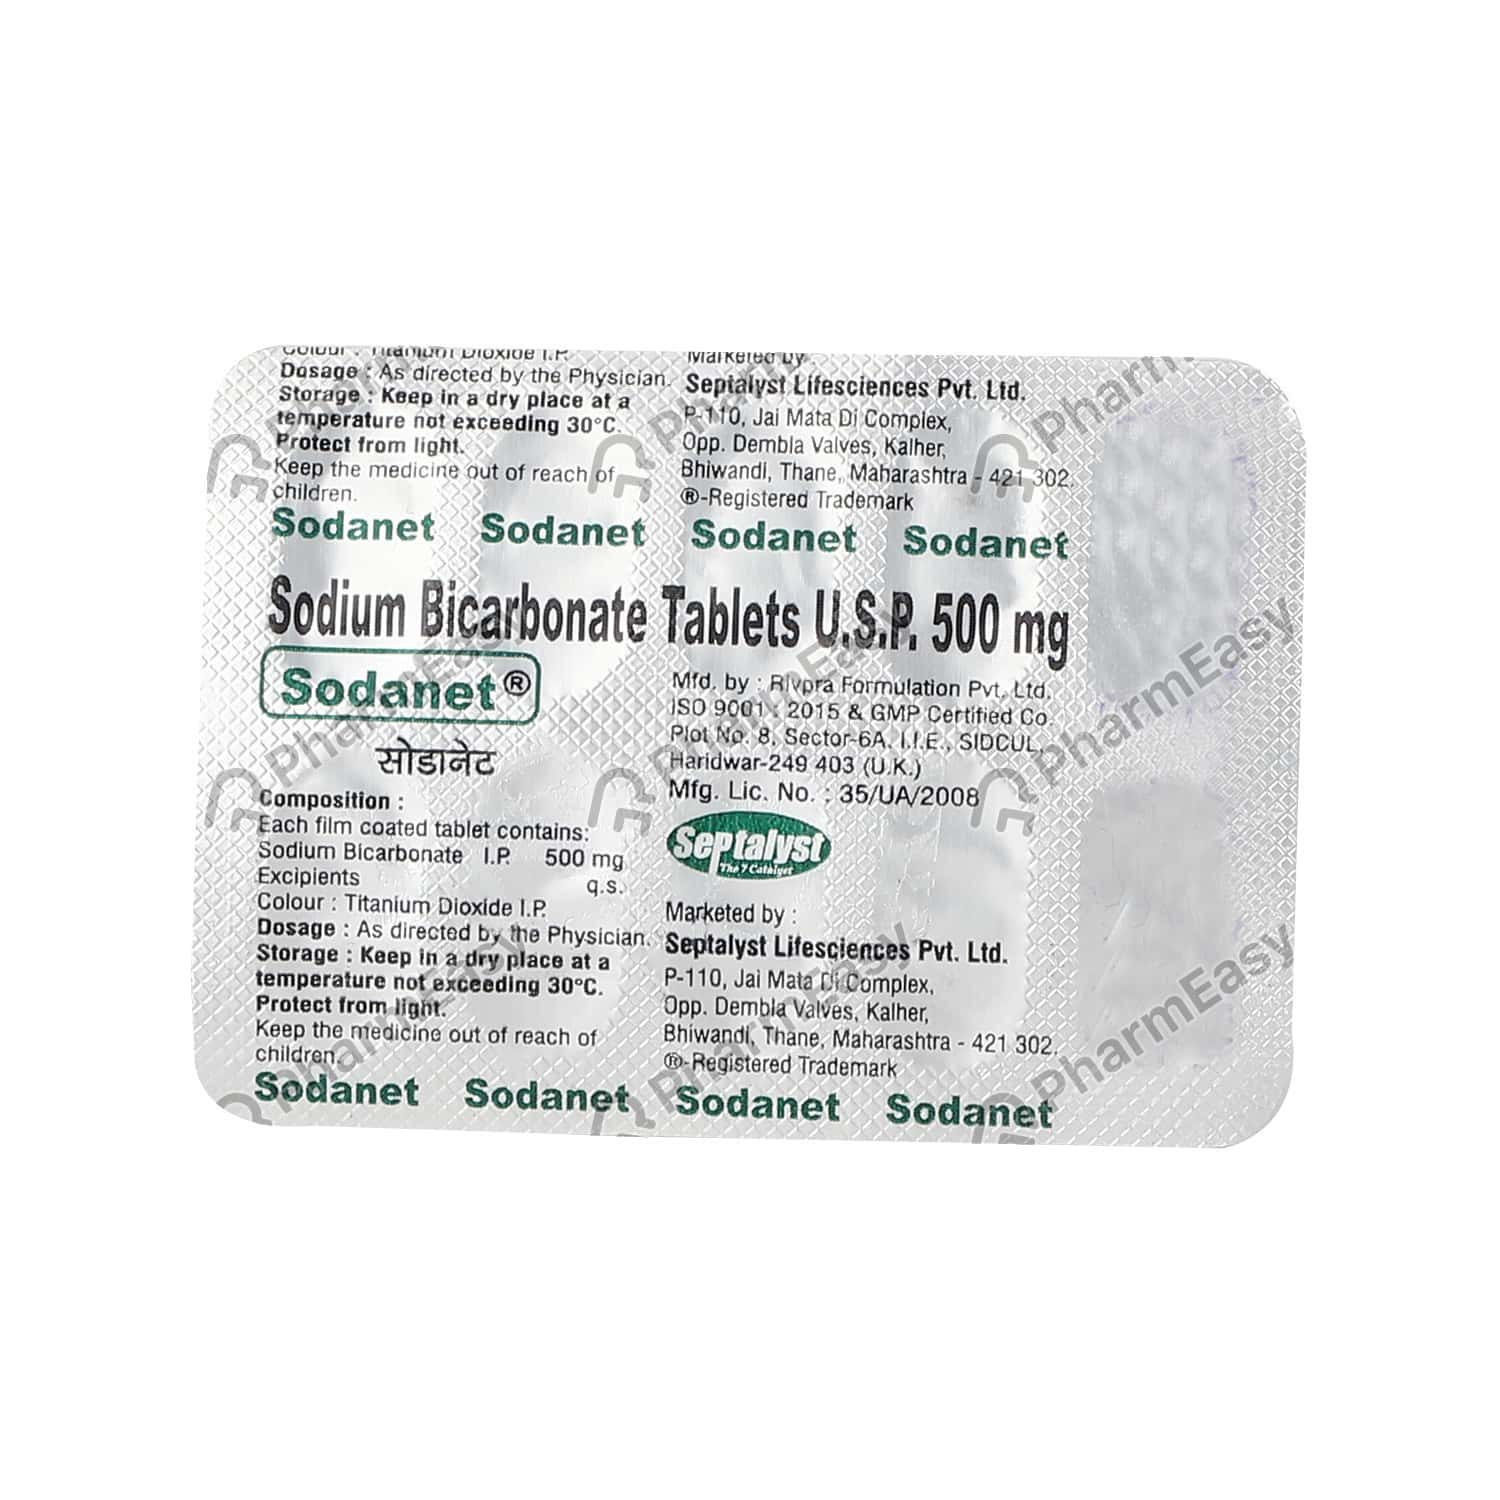 Sodanet 500mg Tablet